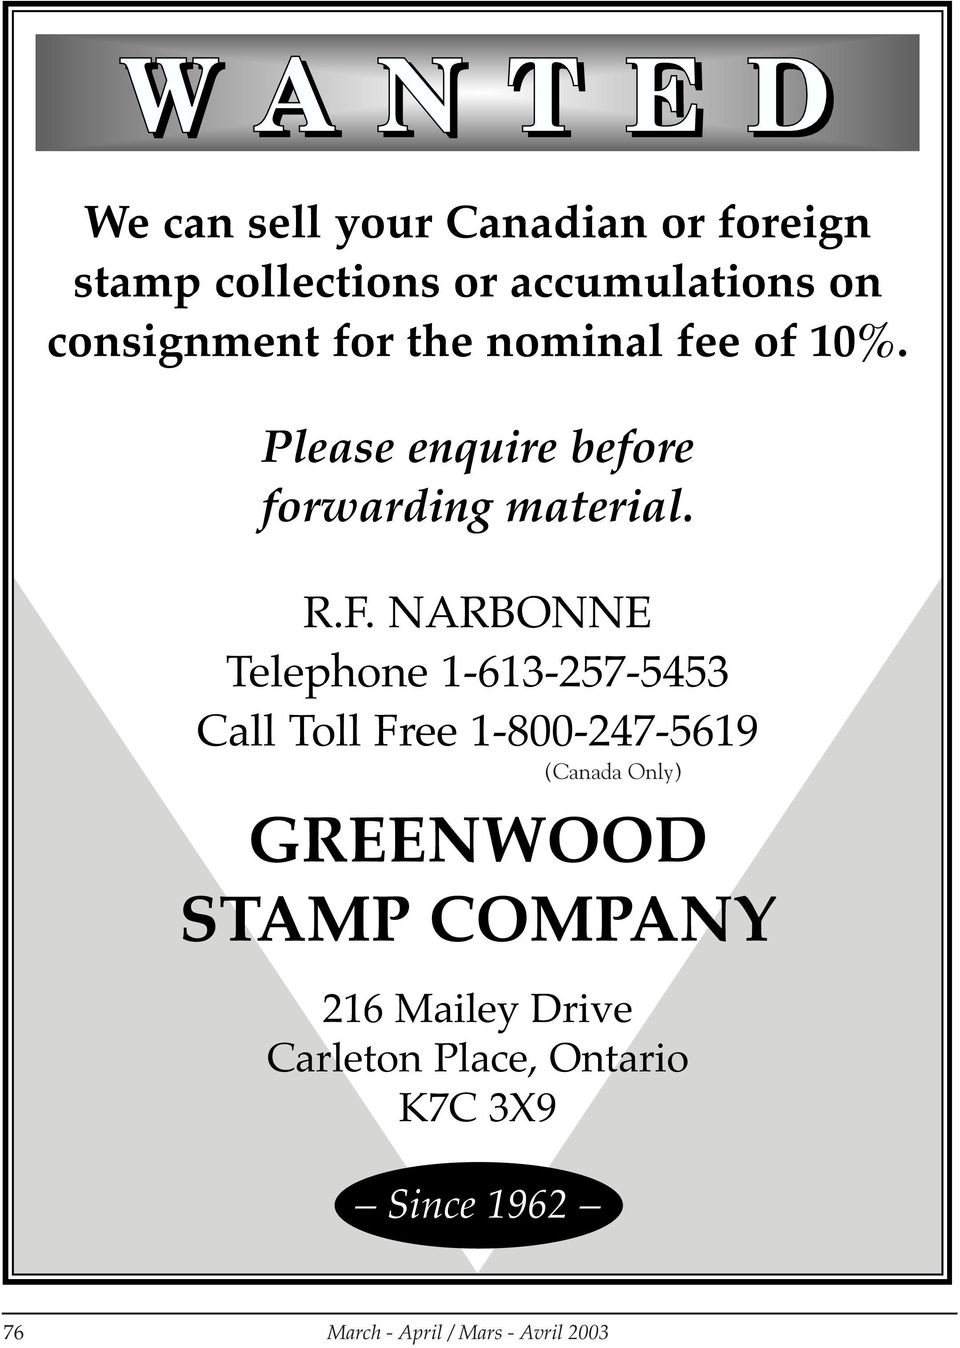 NARBONNE Telephone 1-613-257-5453 Call Toll Free 1-800-247-5619 GREENWOOD STAMP COMPANY 216